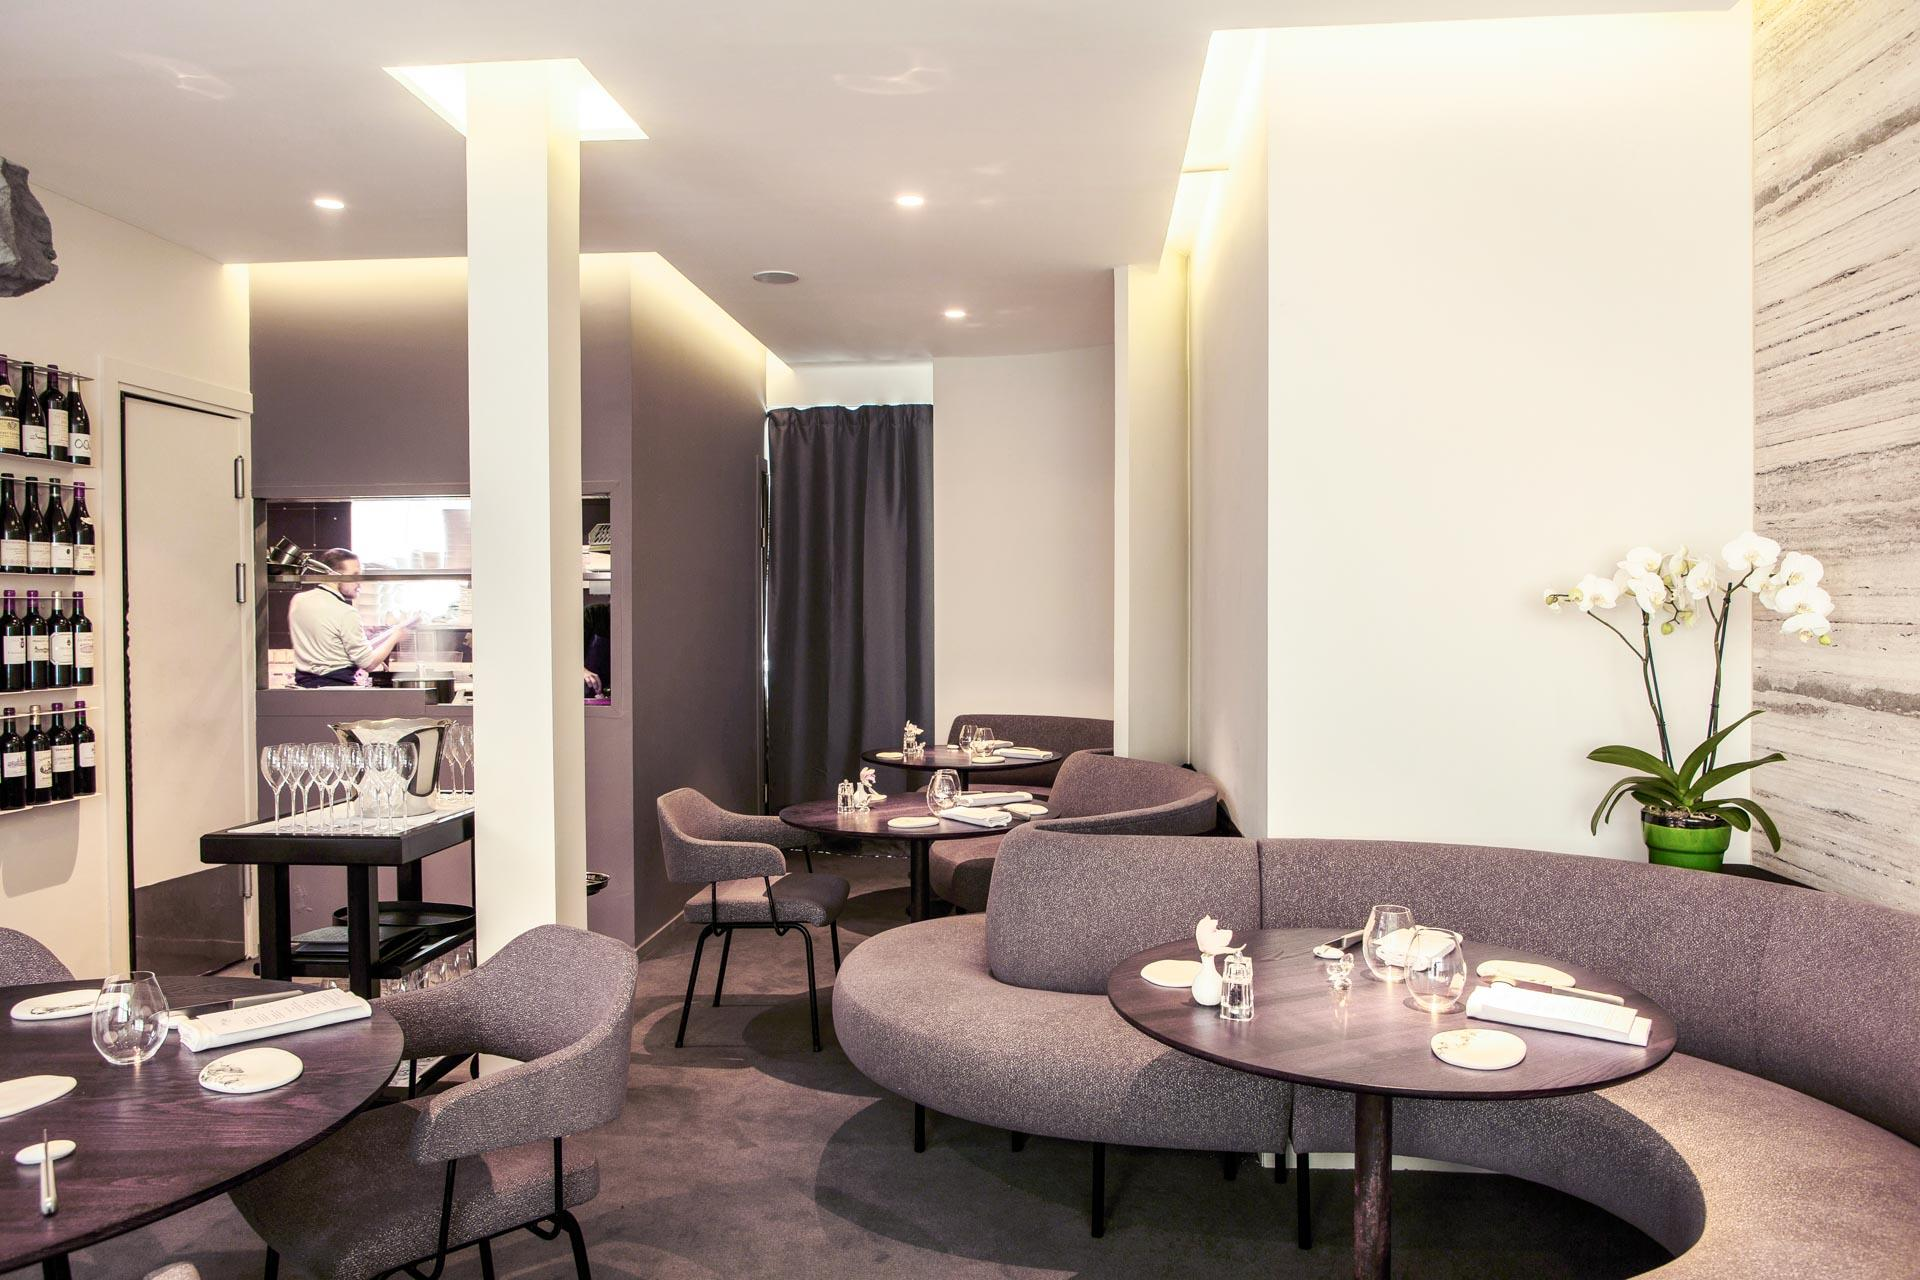 Paris on a test le restaurant alan geaam table - Restaurant la salle a manger marcq en baroeul ...